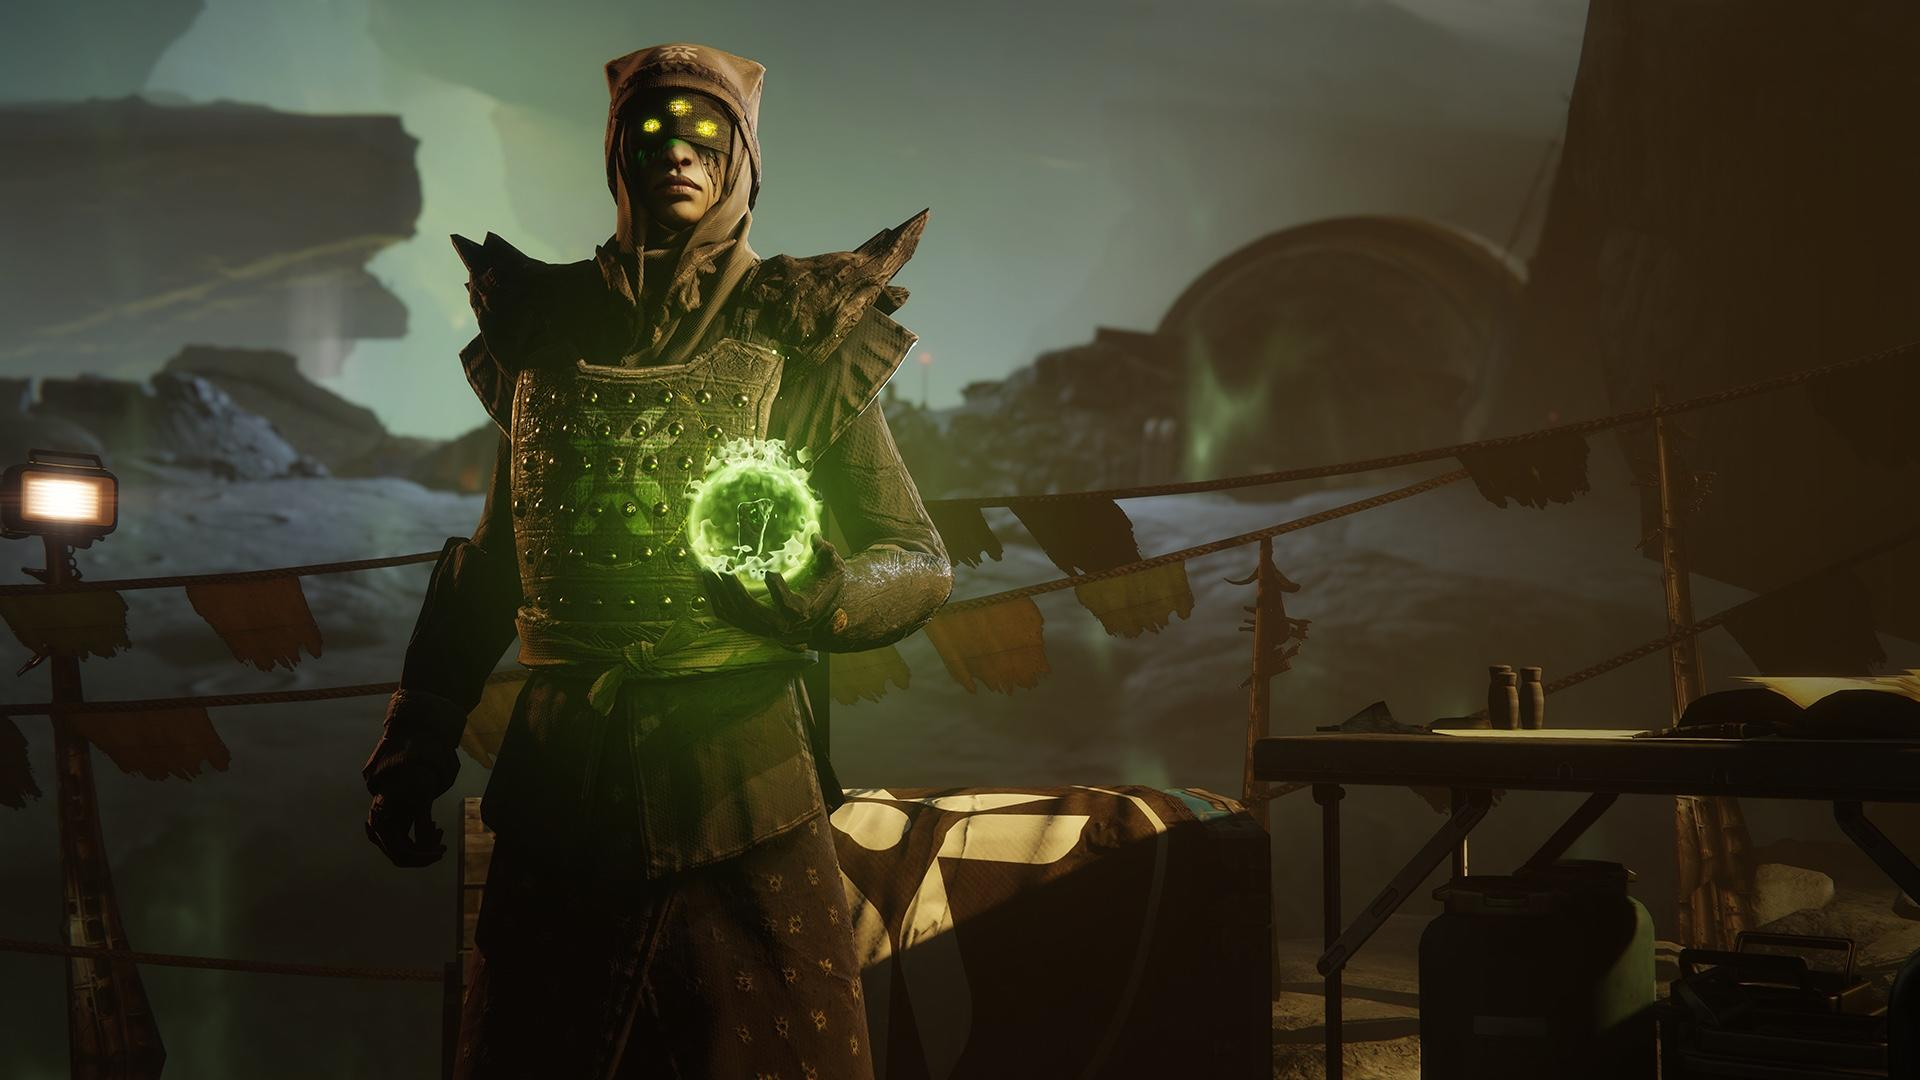 Destiny 2 is going down briefly today amid tons of New Light players smashing the servers